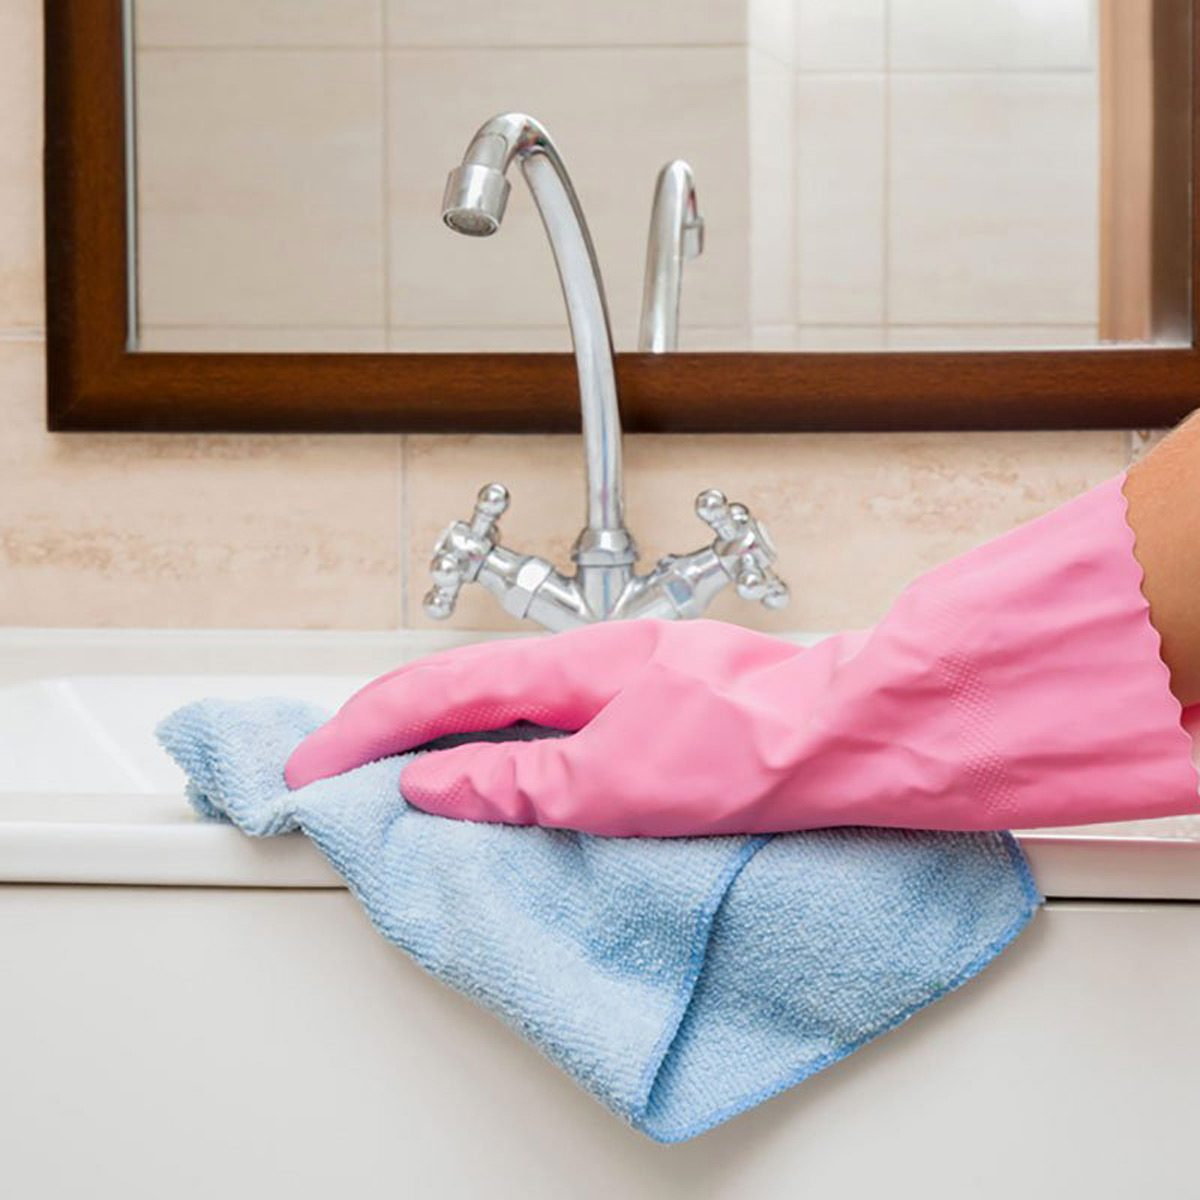 In the bathroom, hand in rubber protective glove cleaning with microfiber cloth washing and polishing ceramic sink and water tap